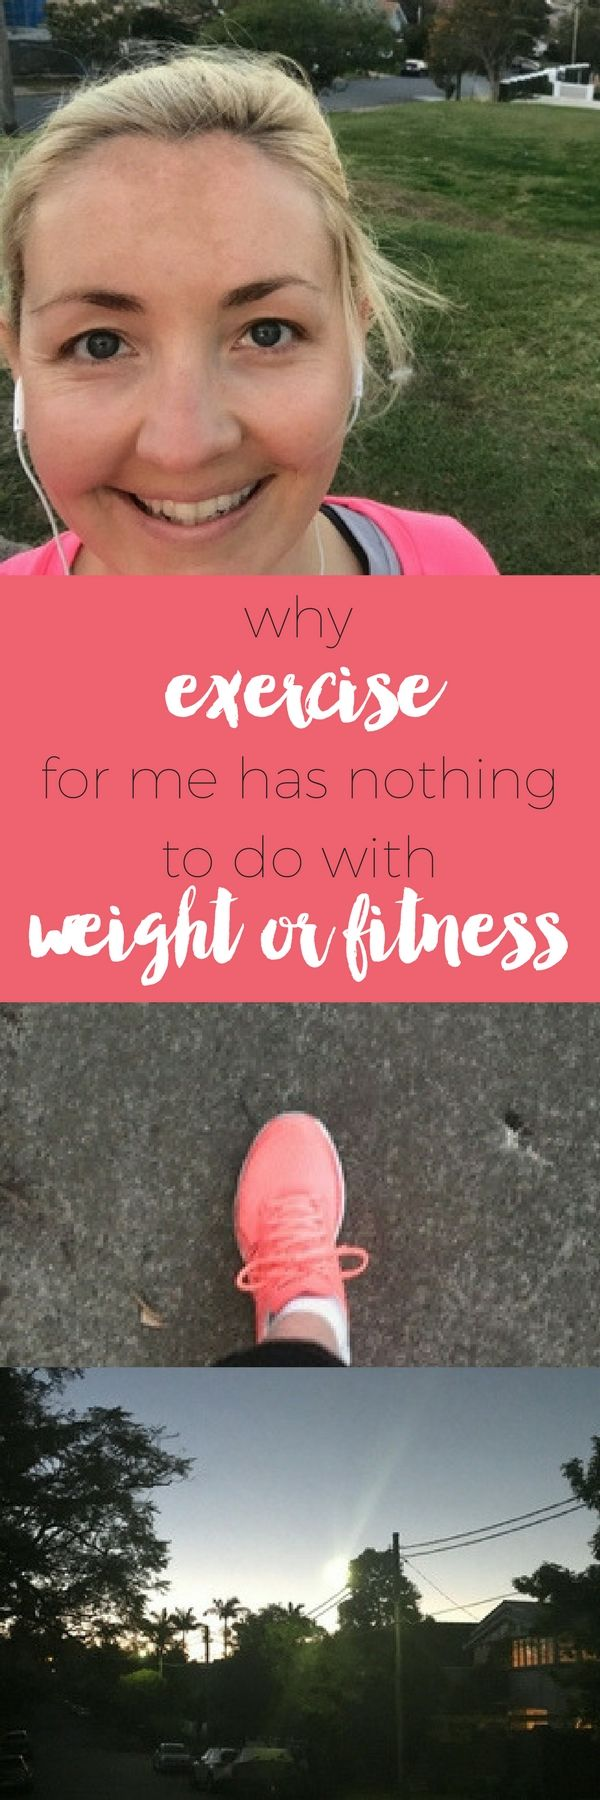 Why exercise for me has nothing to do with weight or fitness